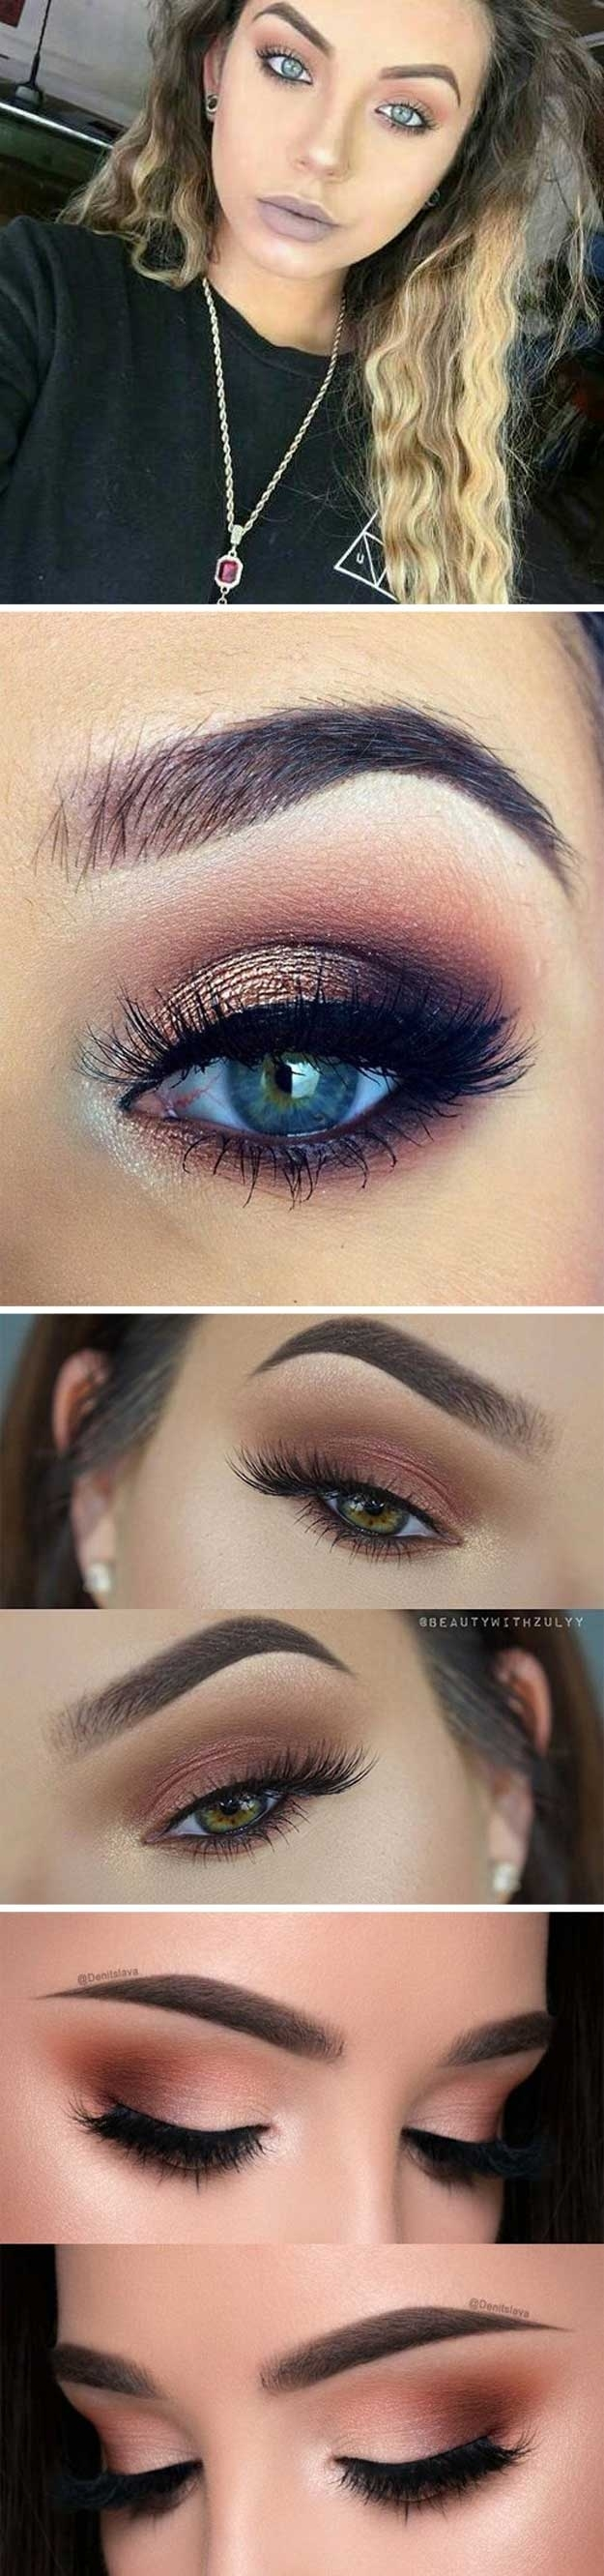 34 Makeup Tutorials For Small Eyes The Goddess - 625×2664